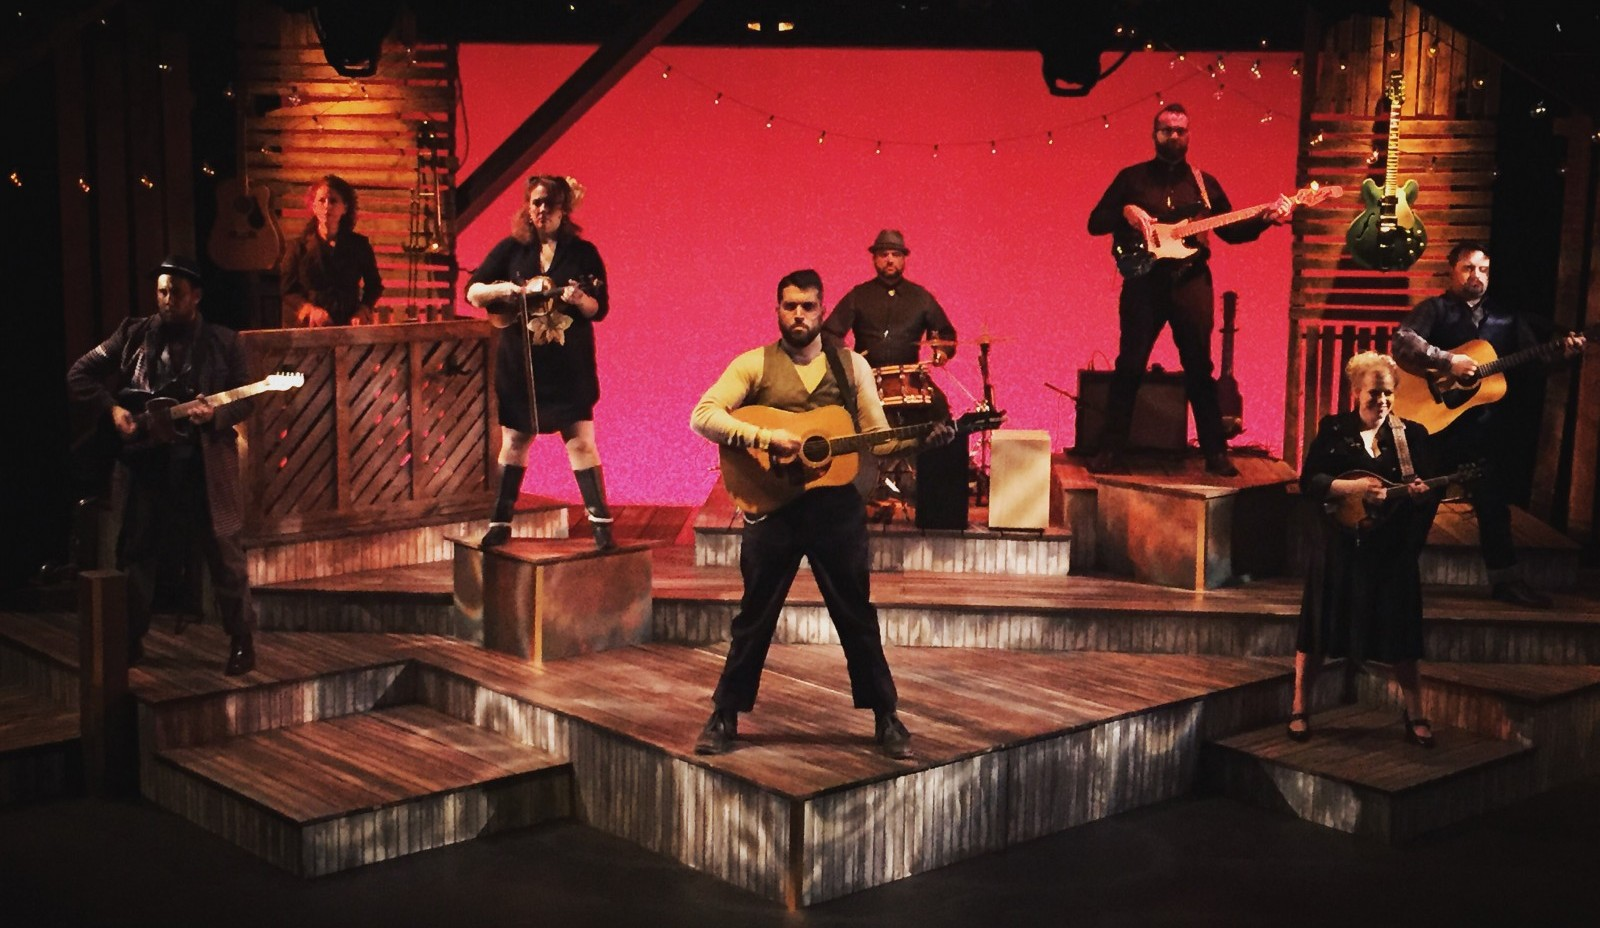 The popular musical 'Ring of Fire' returns to the Buffalo stage with a run at MusicalFare Theatre.